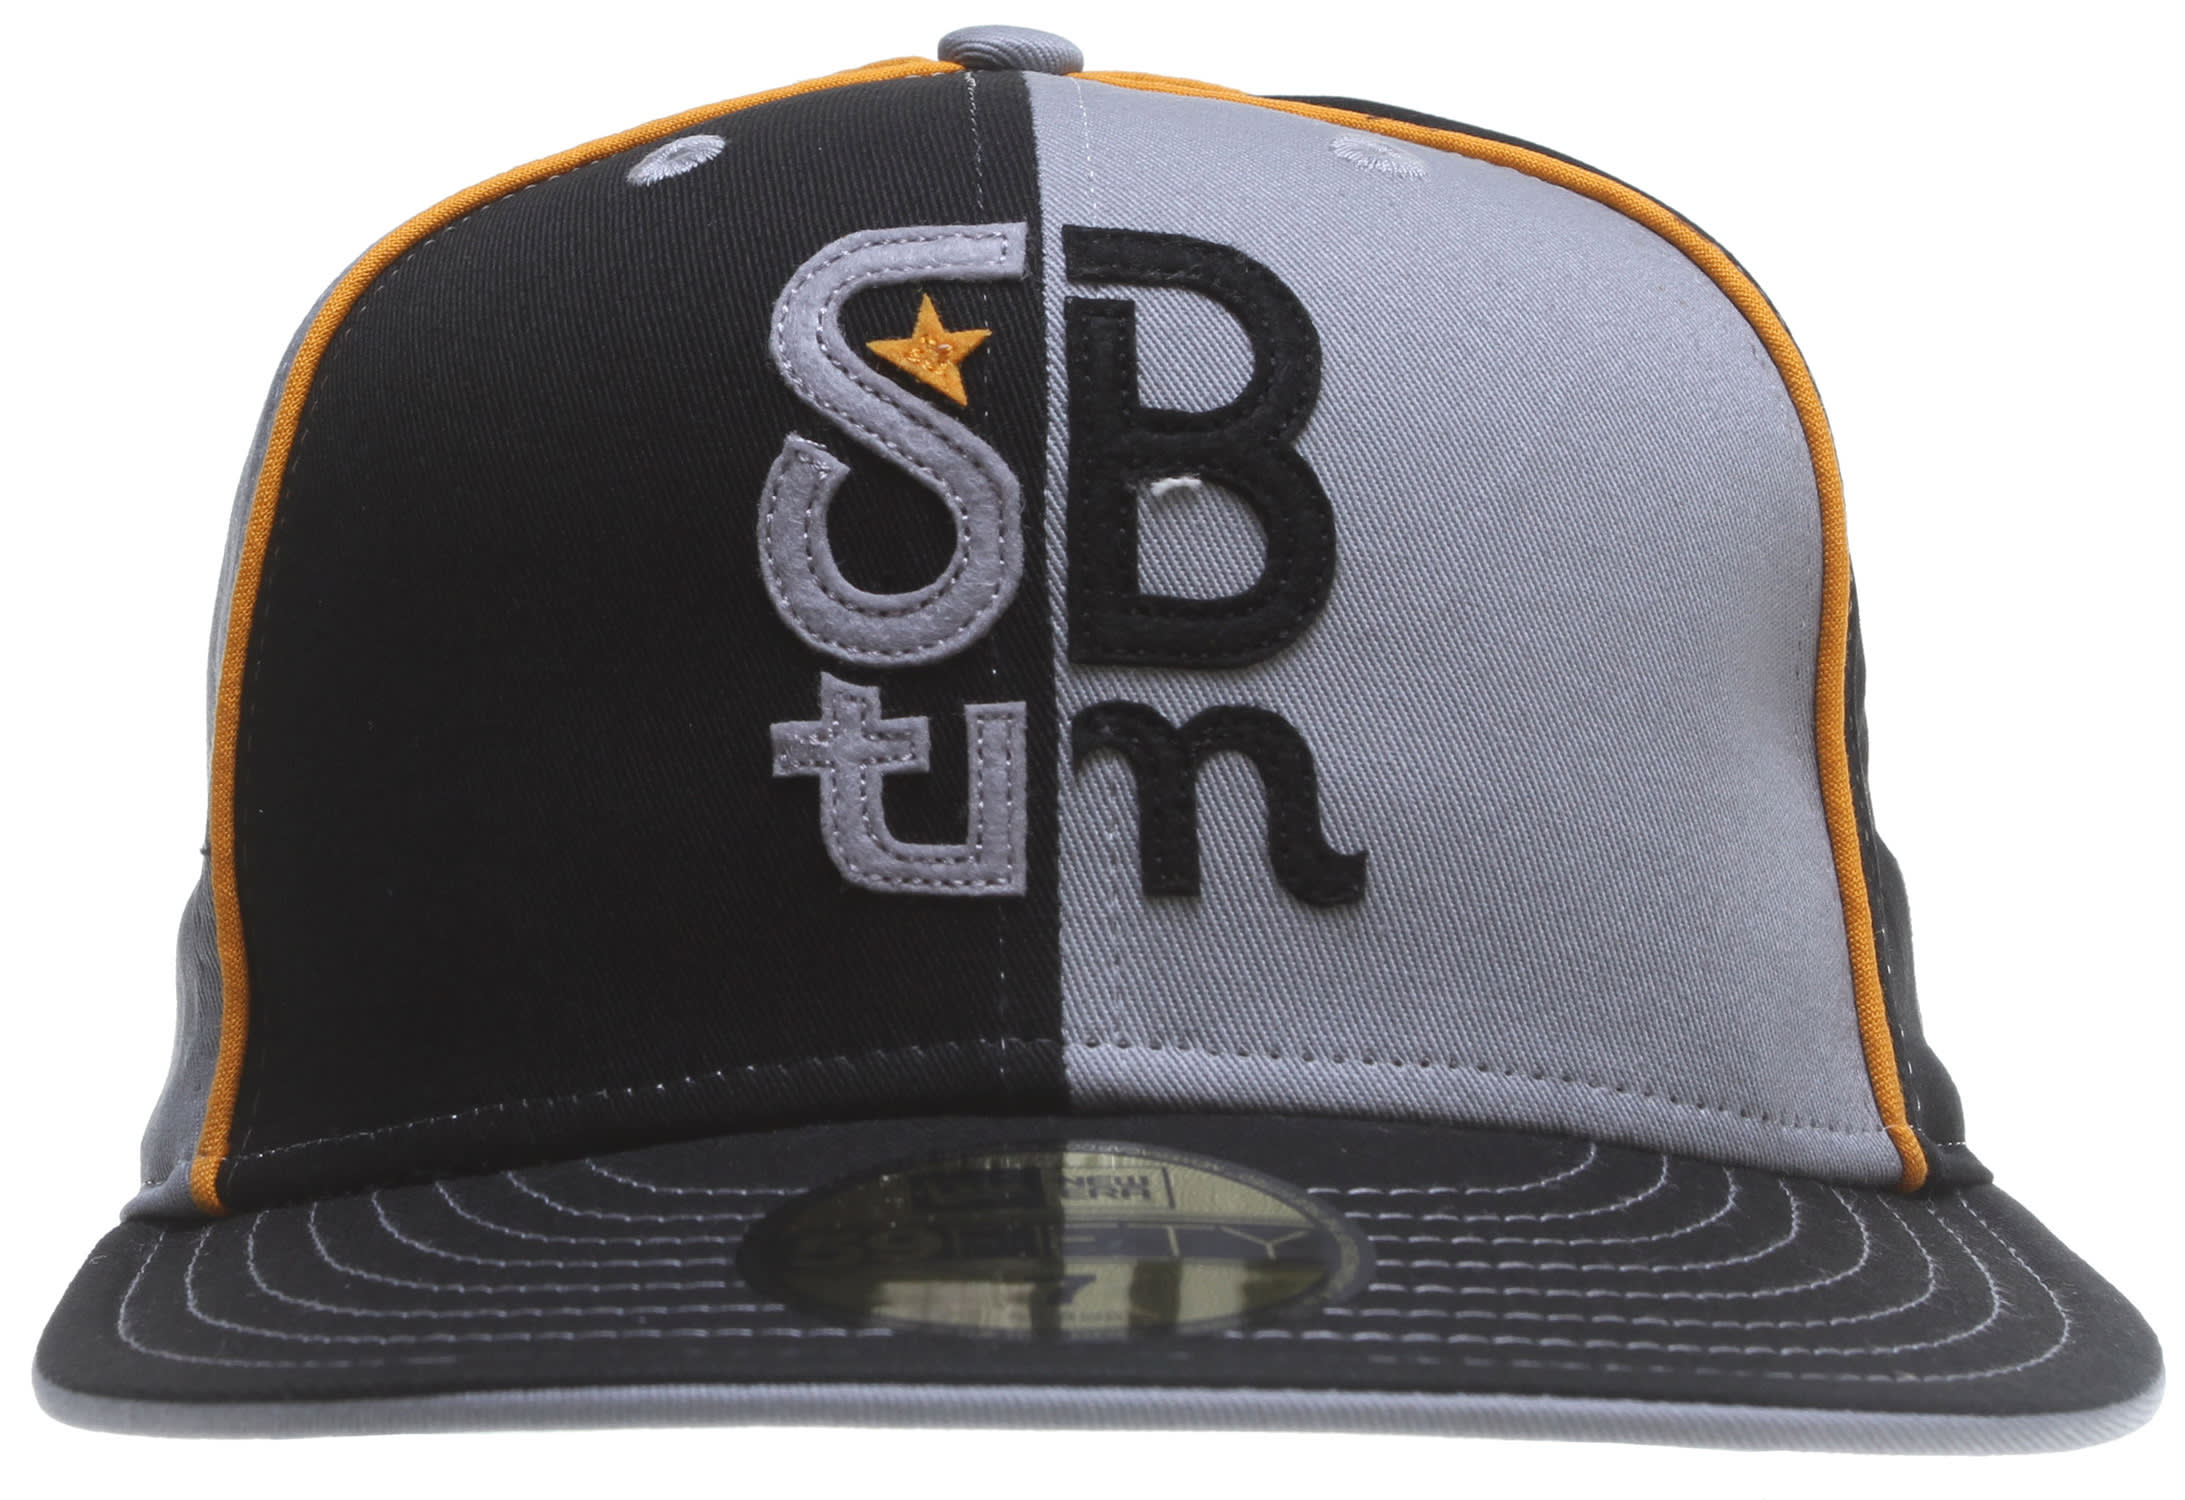 Shop for Special Blend Sbtm New Era Cap Black - Men's